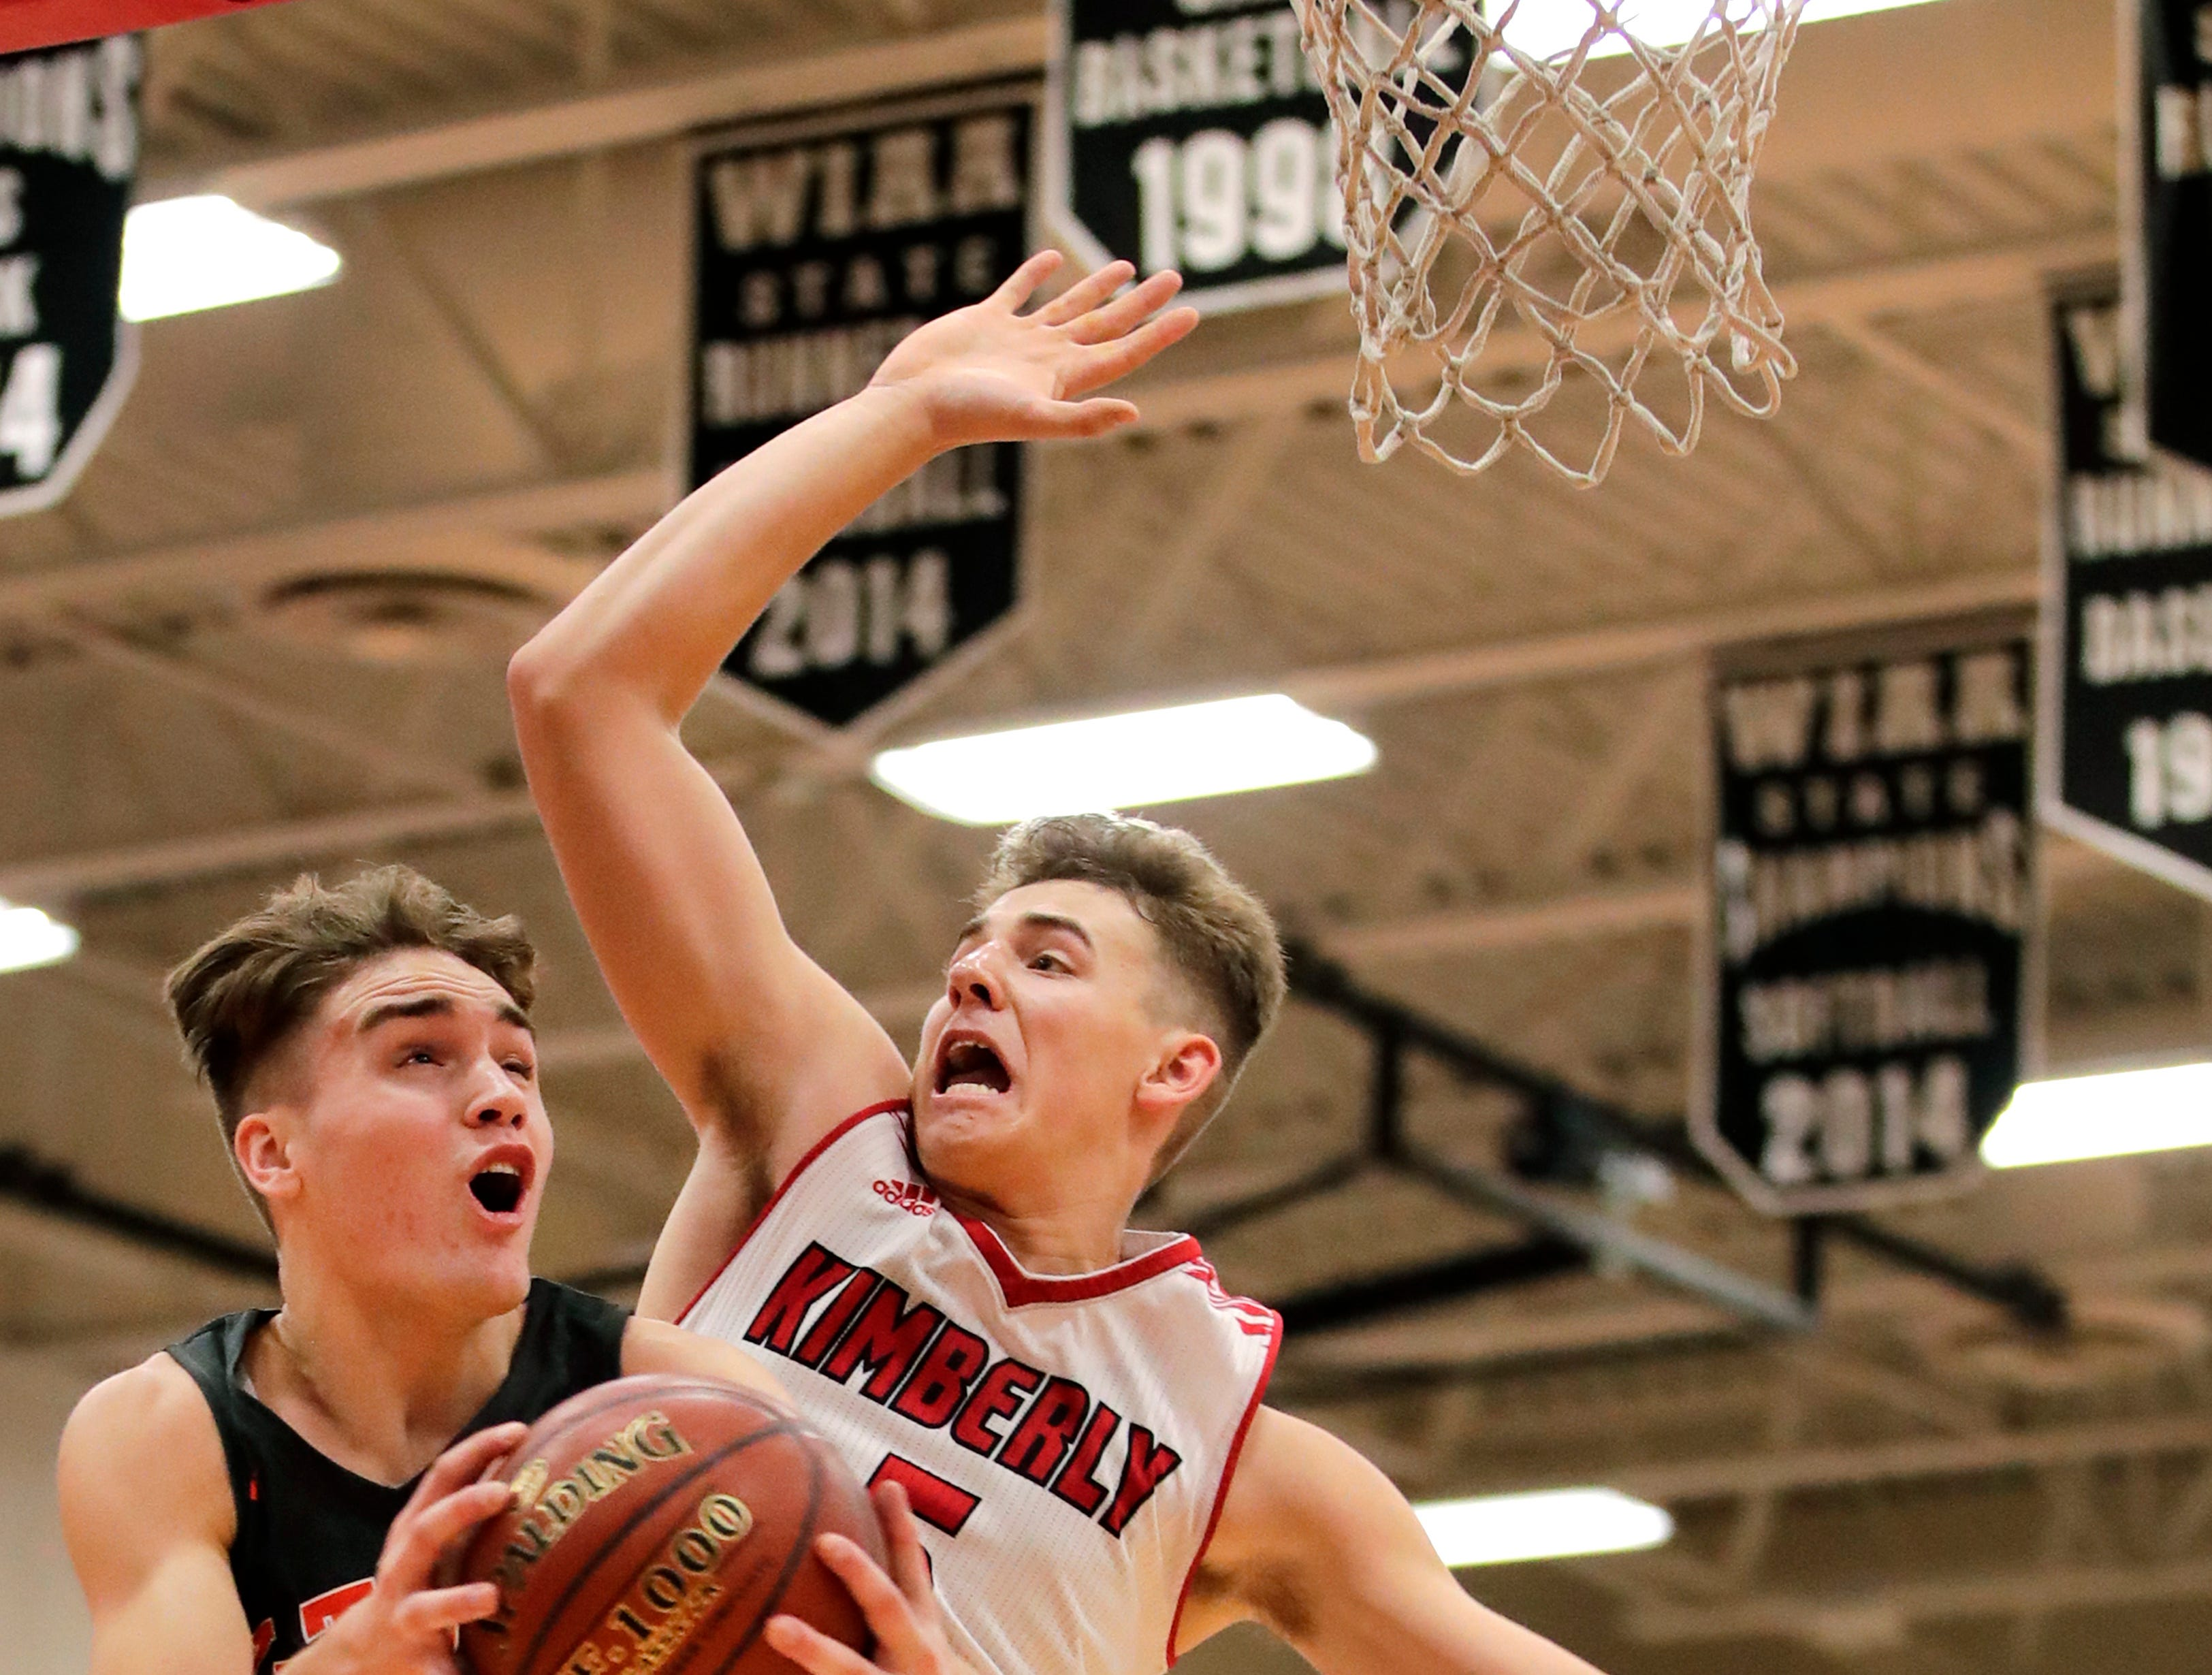 Kaukauna High School's Logan Jedwabny goes for a layup against Kimberly High School's Reed Miller Friday, Dec. 7, 2018, in Kimberly, Wis.